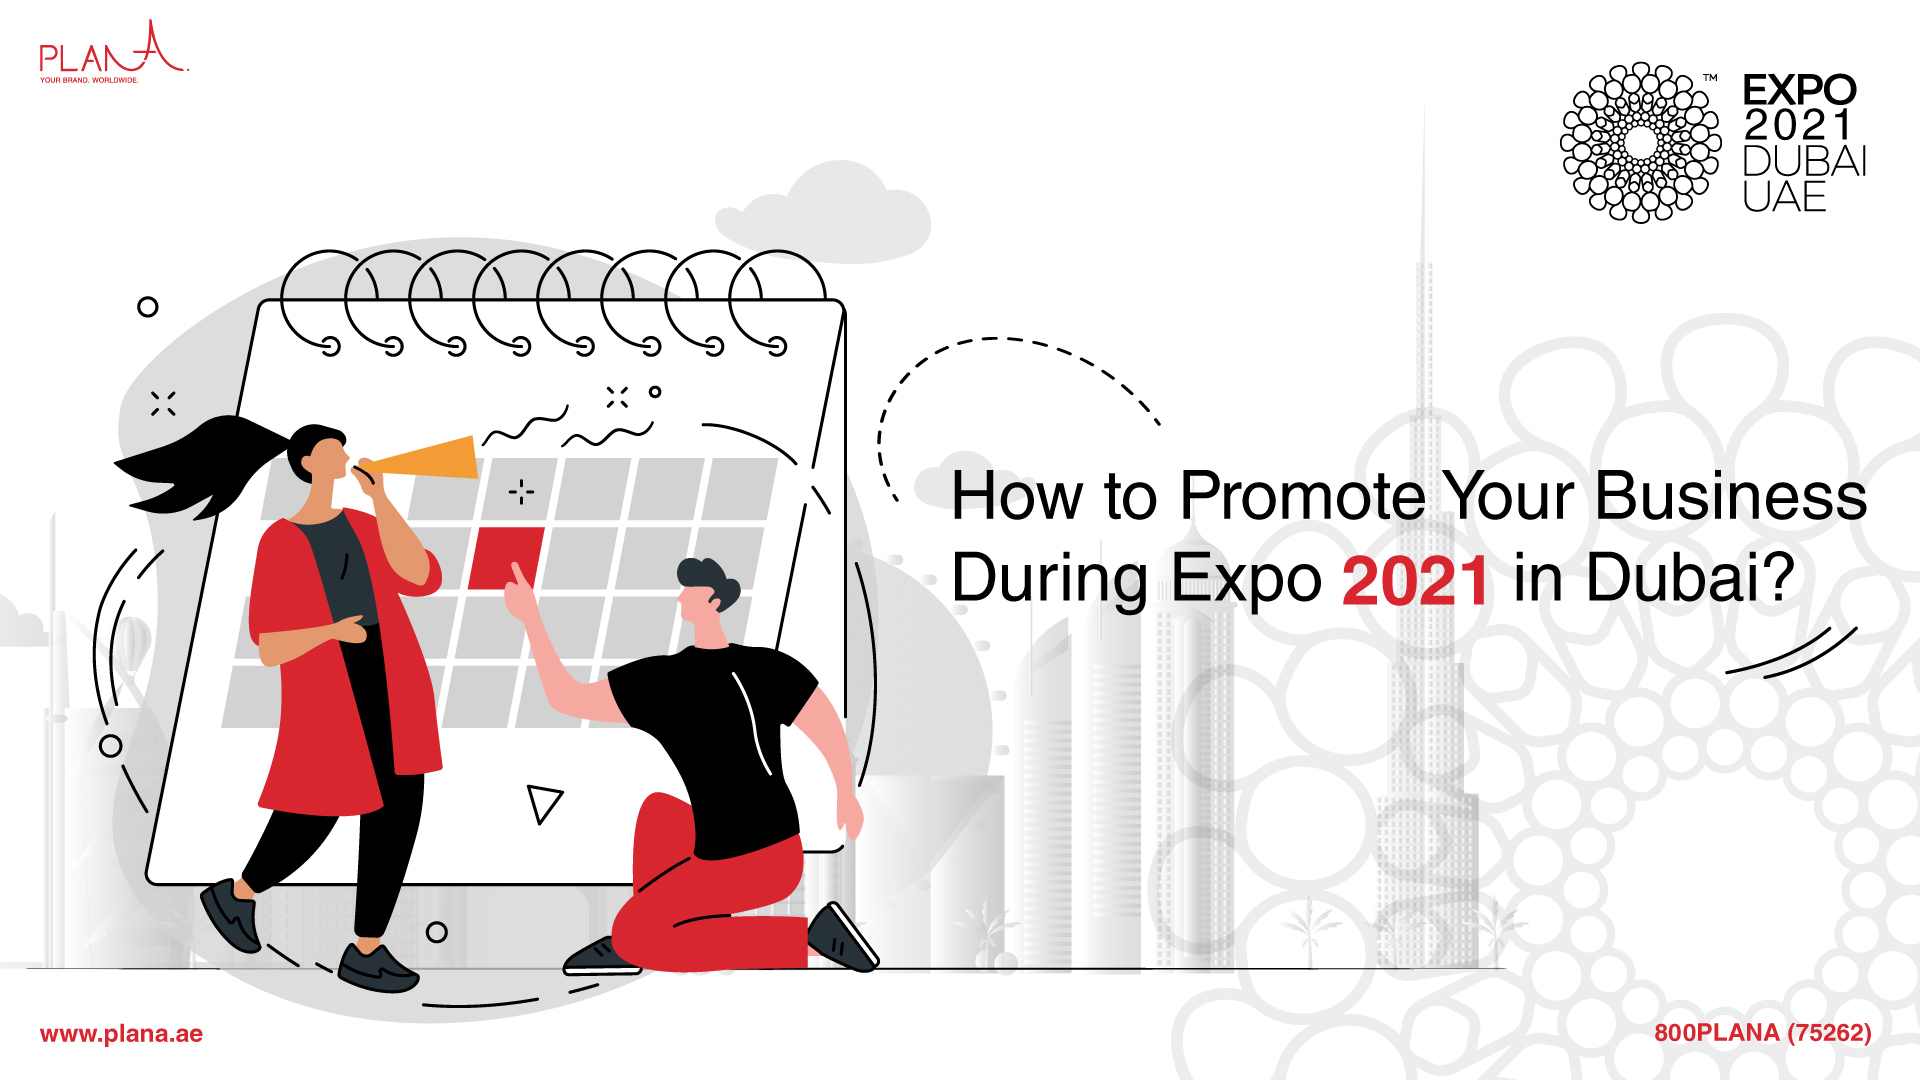 How to Promote Your Business During Expo 2021 in Dubai?